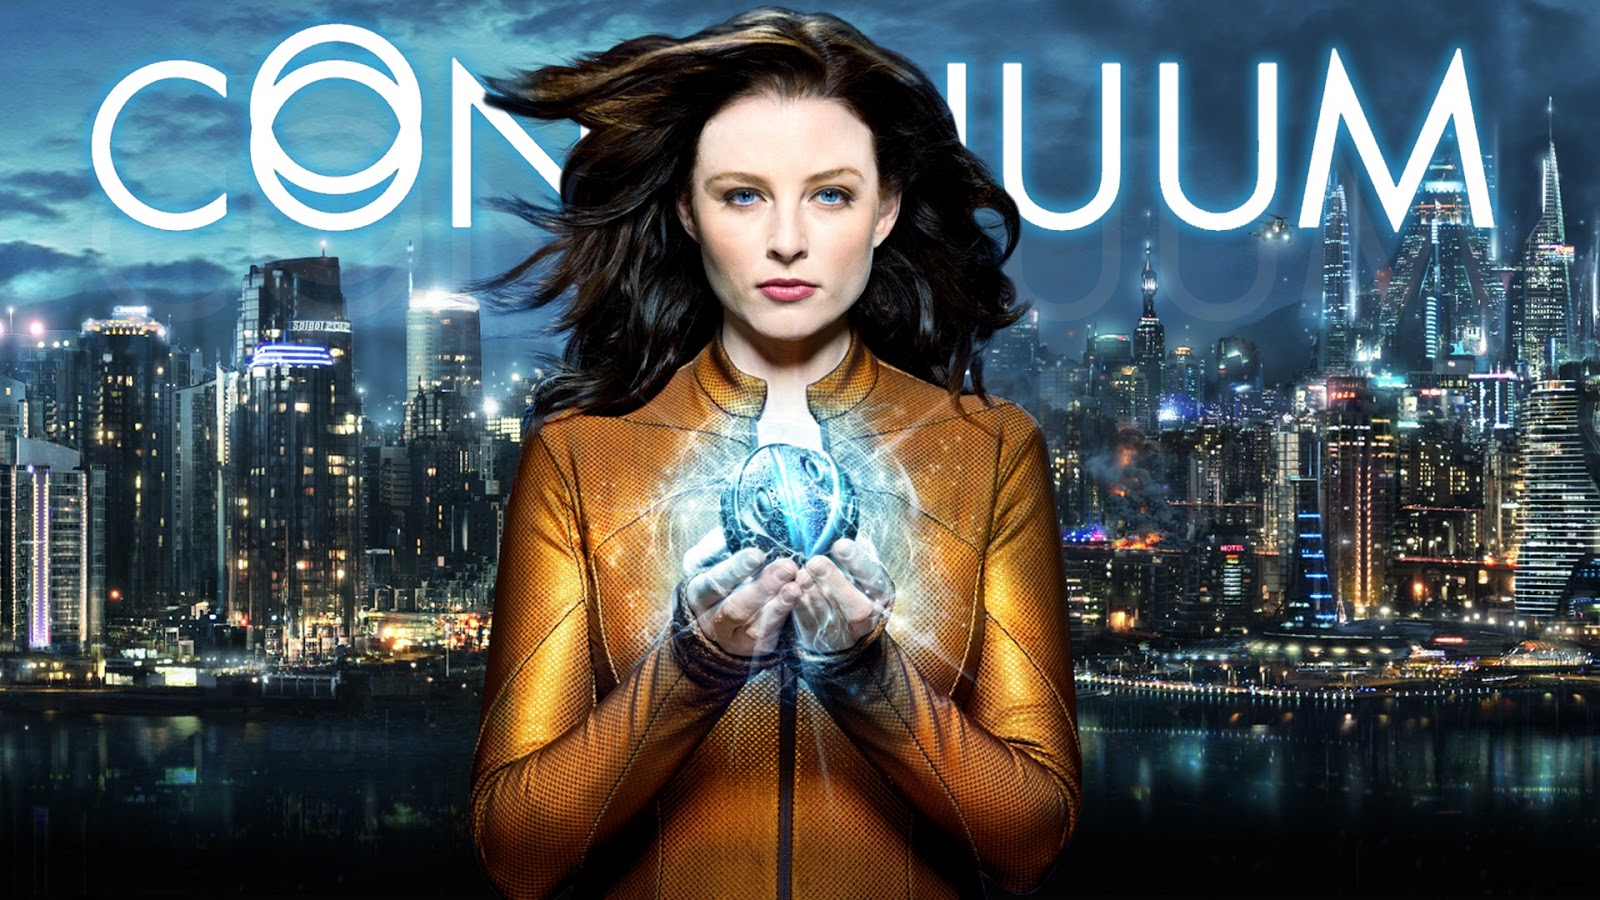 Serie continuum 2 temporada online dating